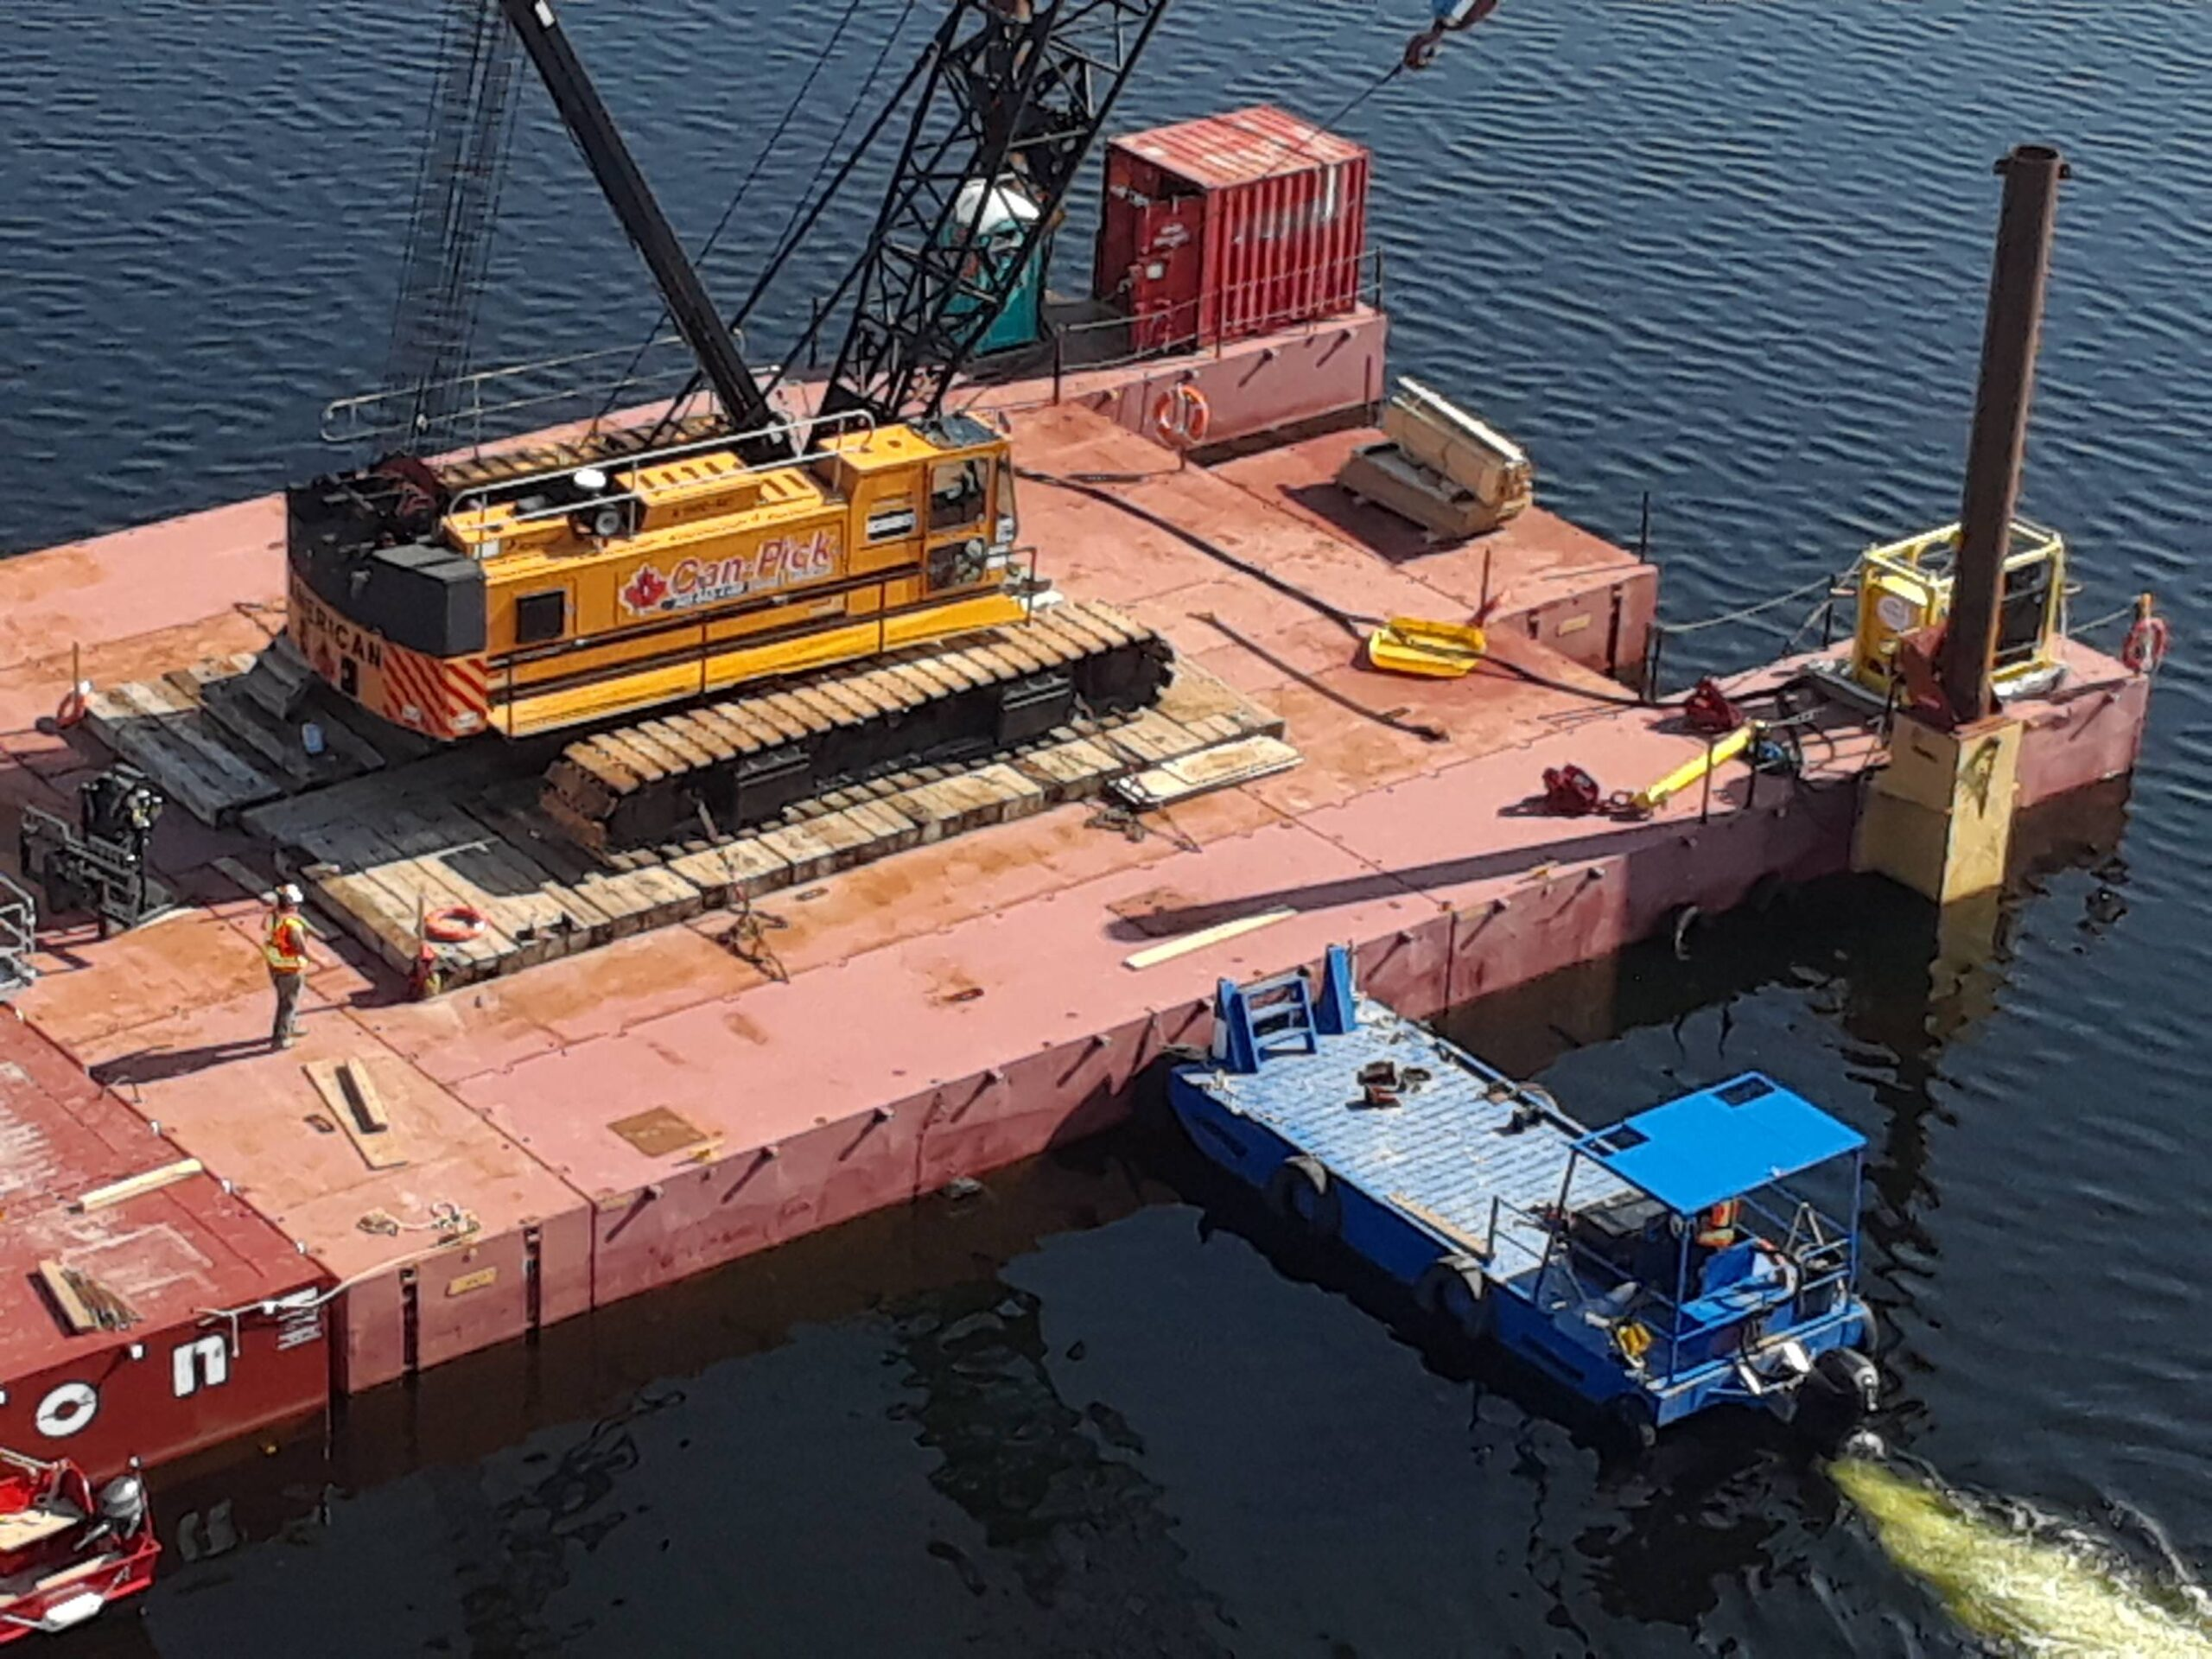 Moving the crane barge into place for girder placement